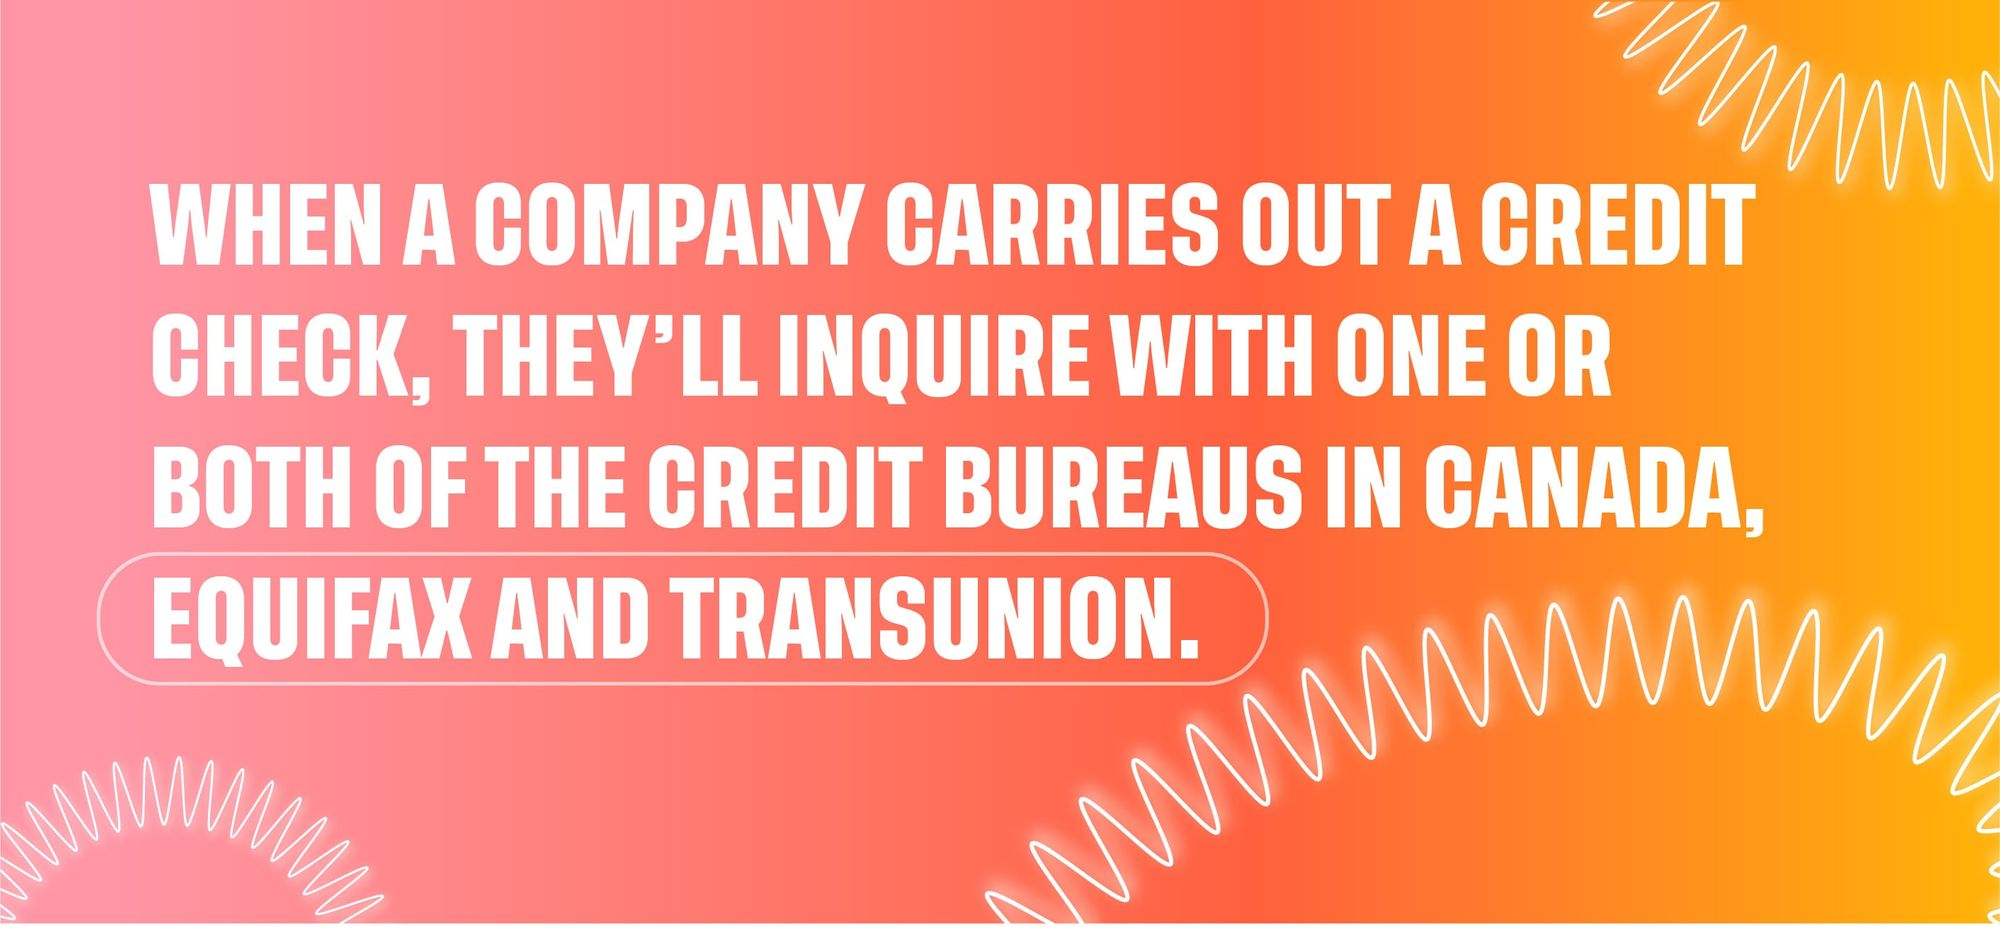 When a company carries out a credit check, they'll inquire with one or both of the credit bureaus in Canada, Equifax and Transunion